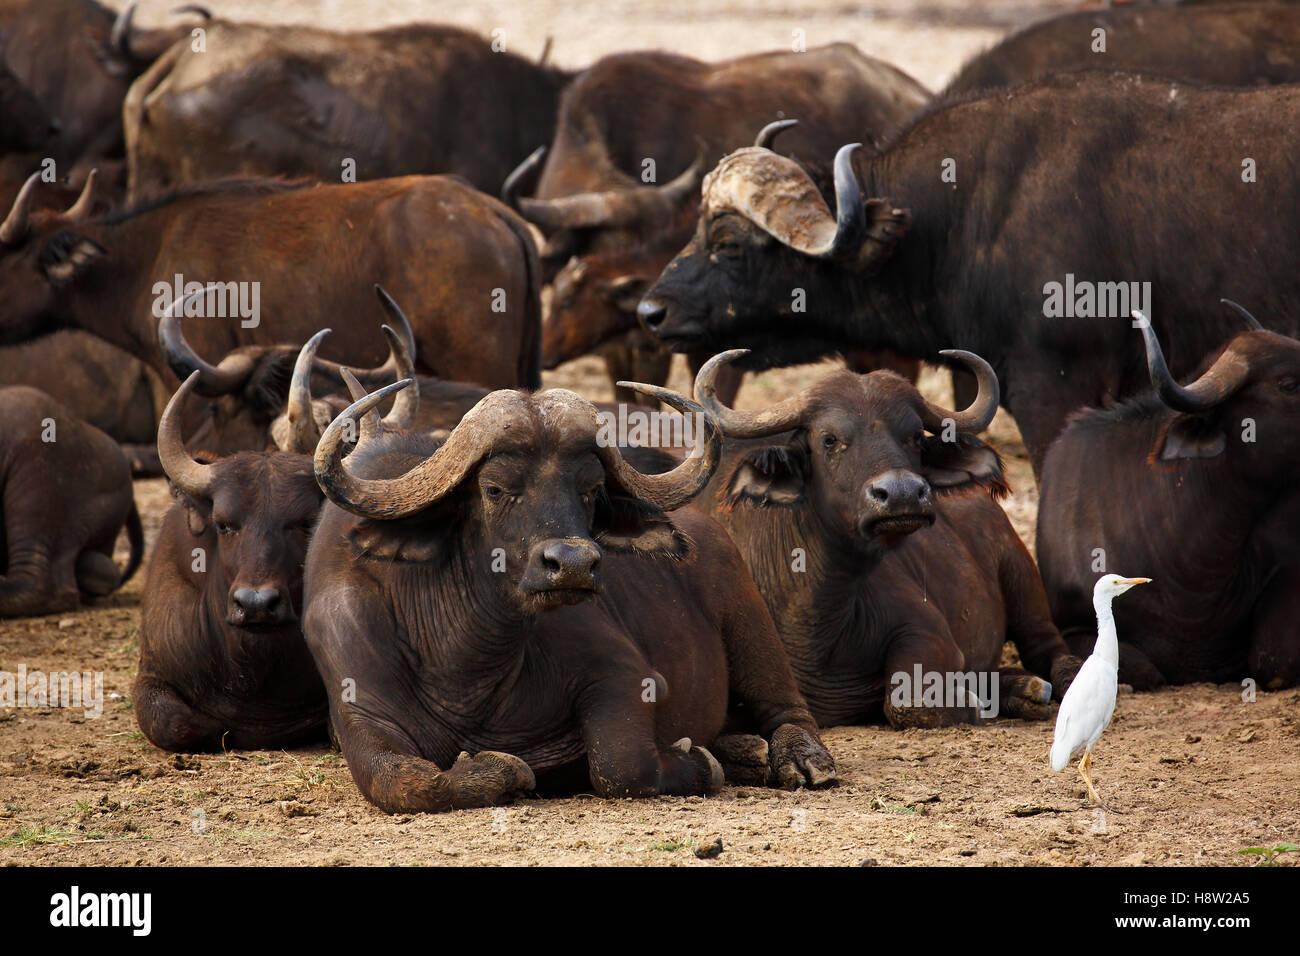 African buffalo (Syncerus caffer) herd resting and a cattle egret (Bubulcus ibis), Lake Manyara National Park, Tanzania - Stock Image